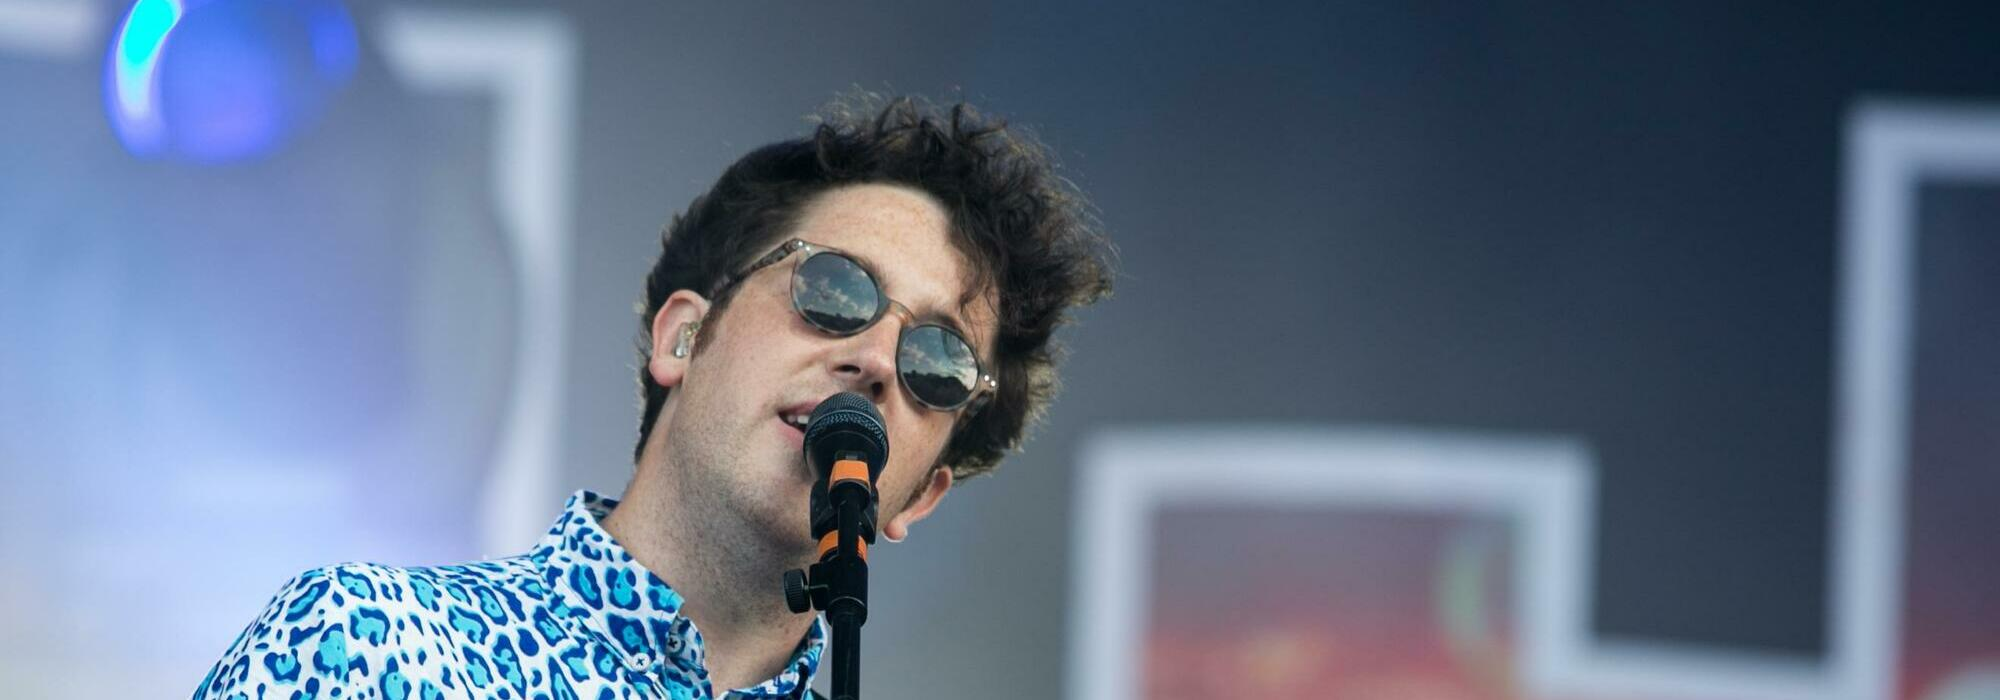 A The Wombats live event